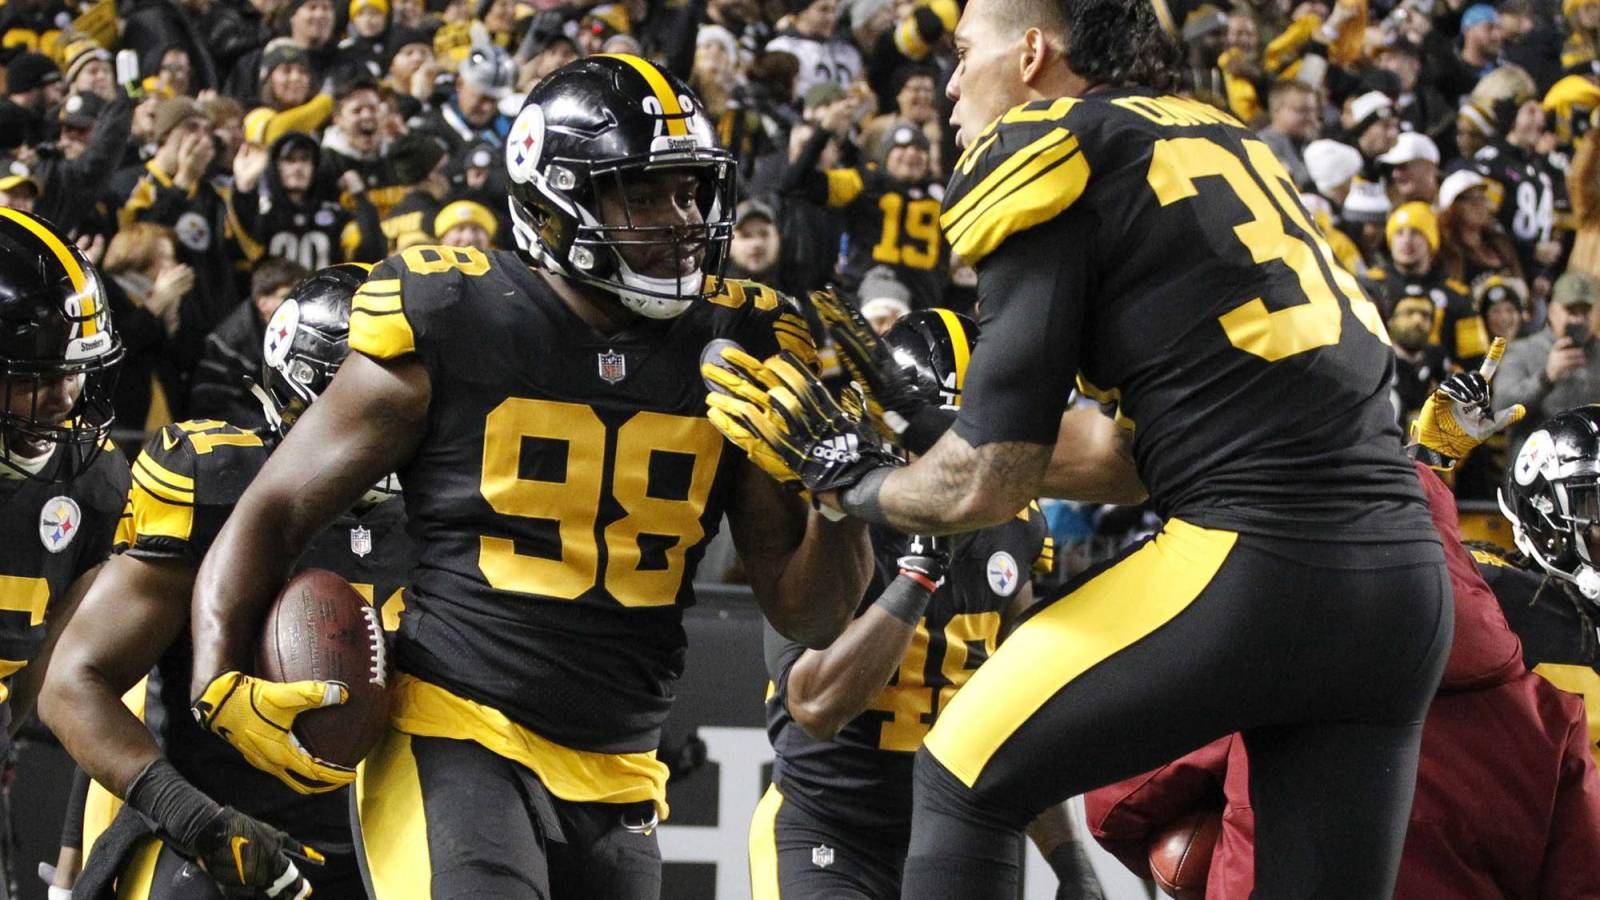 c38b592d45d Nov 8, 2018; Pittsburgh, PA, USA; Pittsburgh Steelers running back James  Conner (30) congratulates inside linebacker Vince Williams (98) on his  touchdown ...